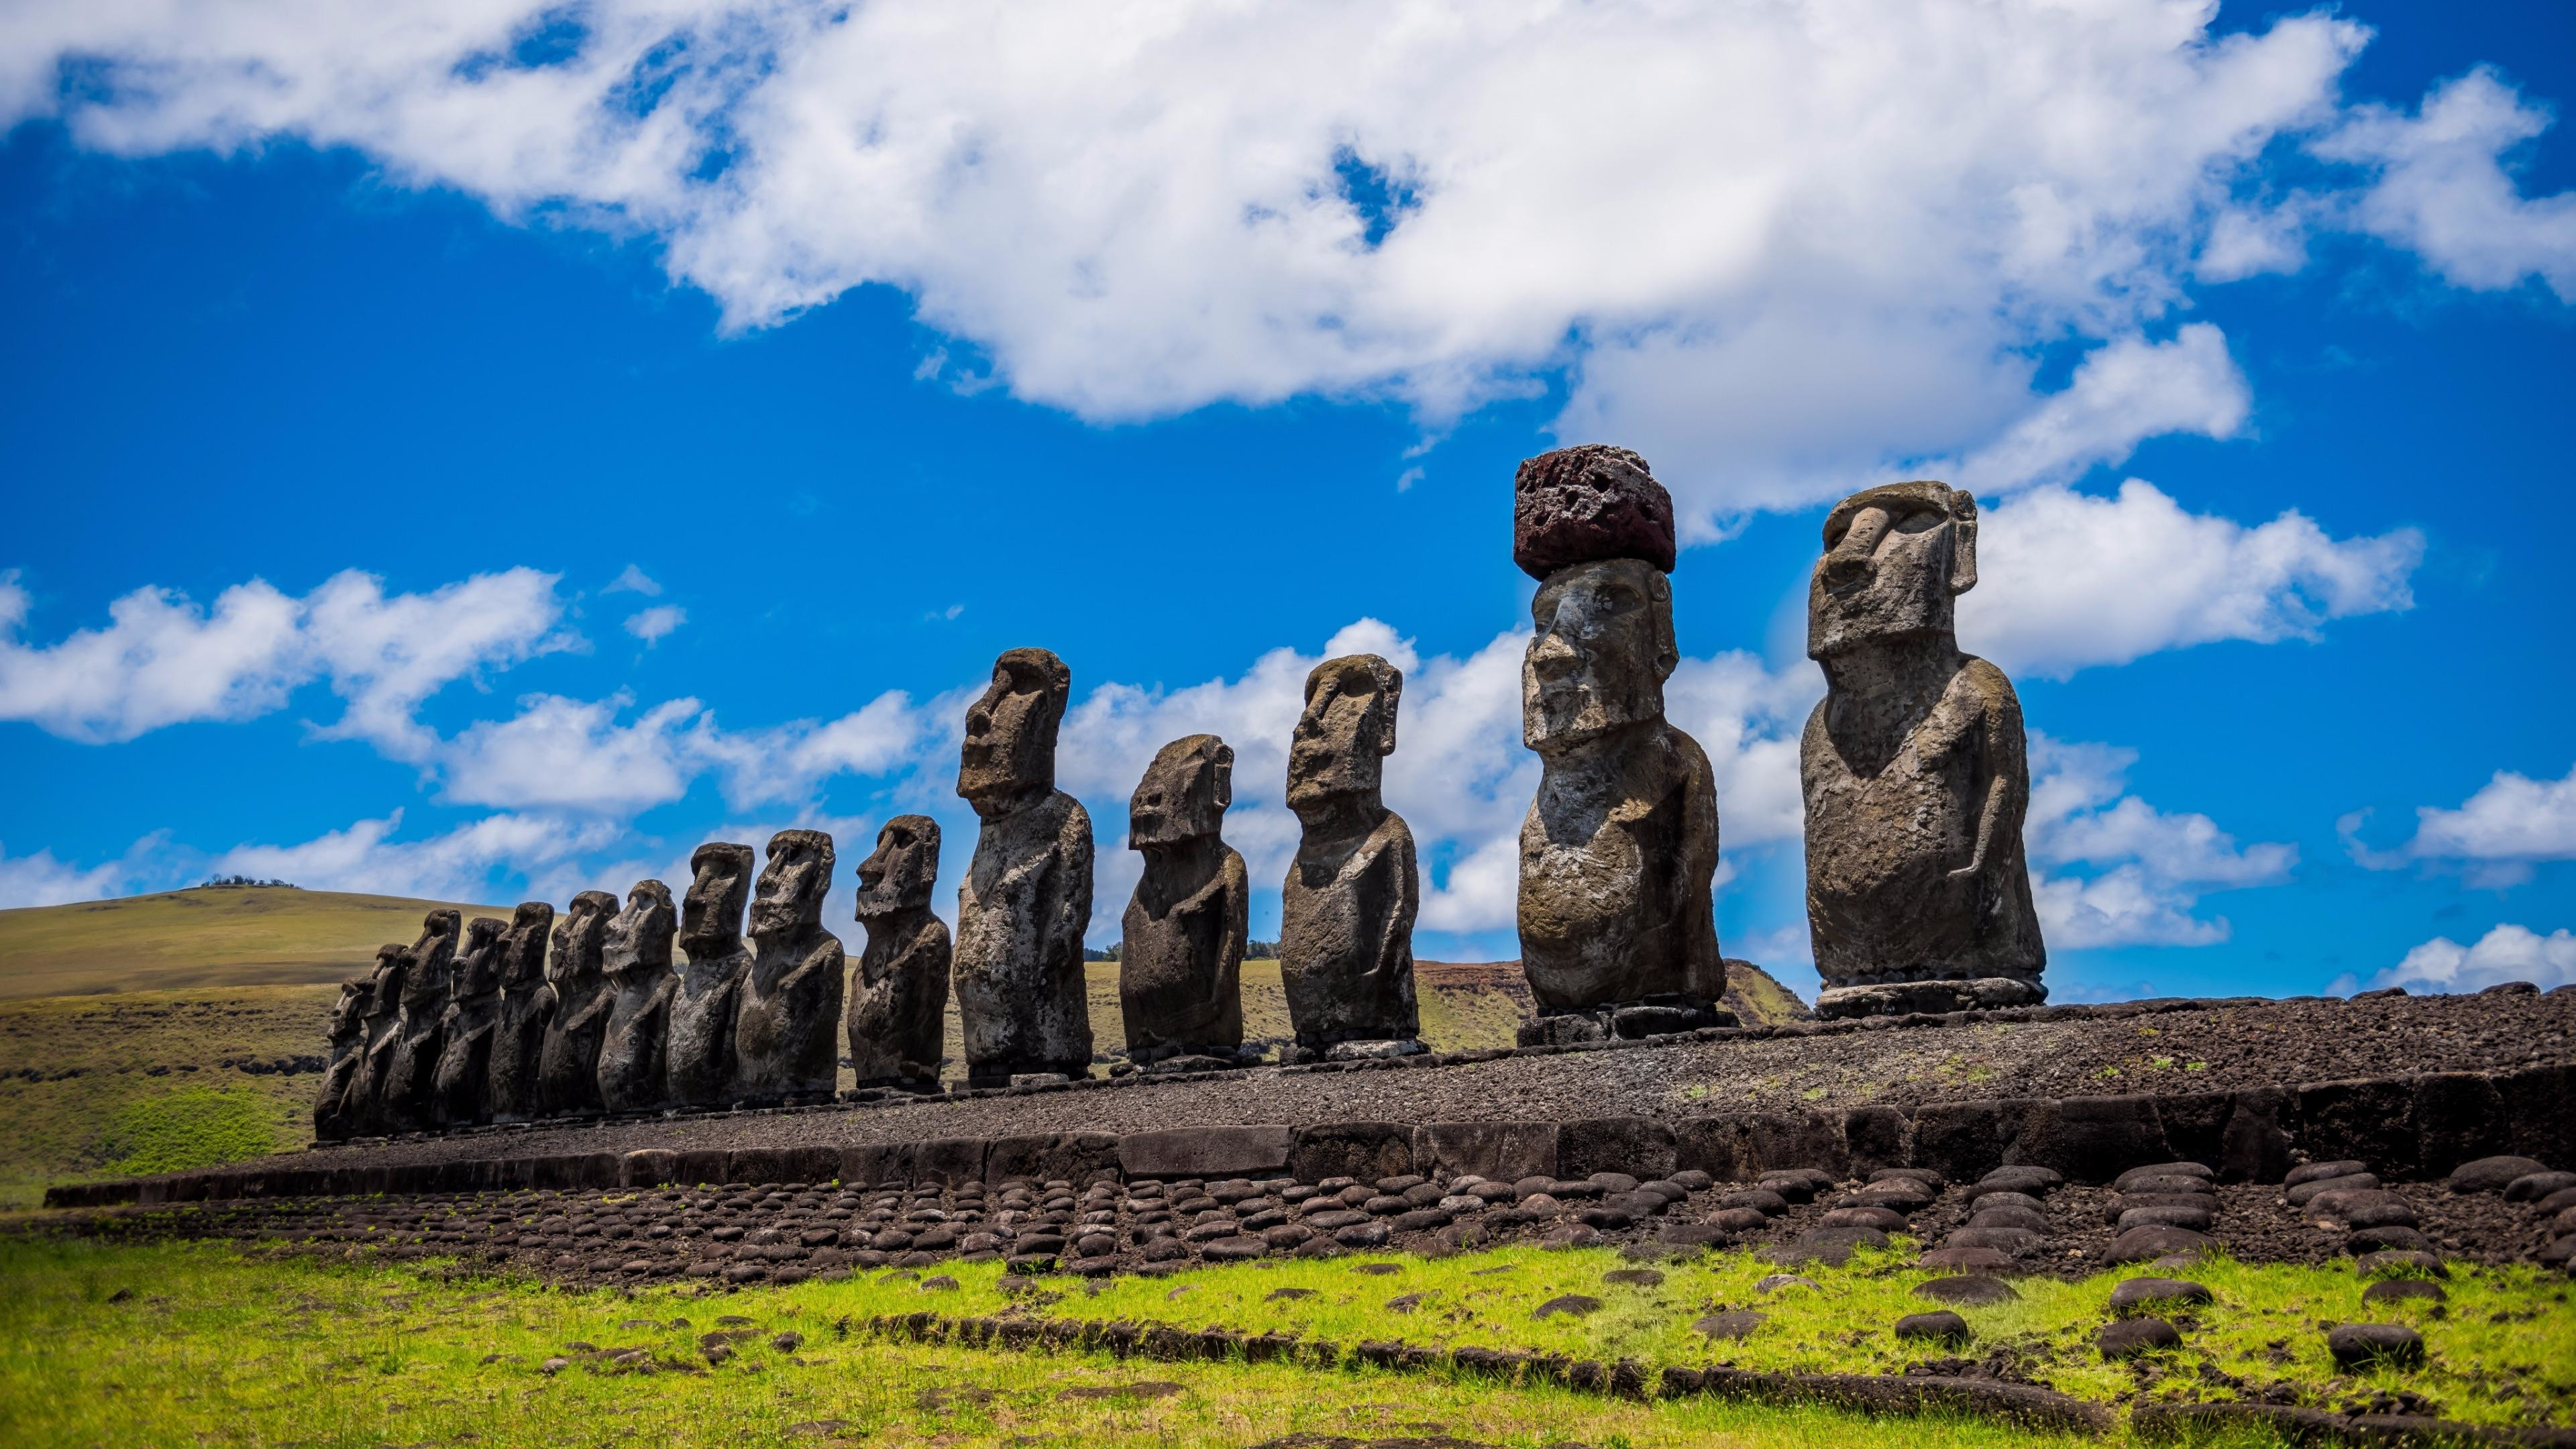 Res: 3840x2160, Moai Easter Island Stone Statues Wallpaper | Wallpaper Studio 10 | Tens of  thousands HD and UltraHD wallpapers for Android, Windows and Xbox